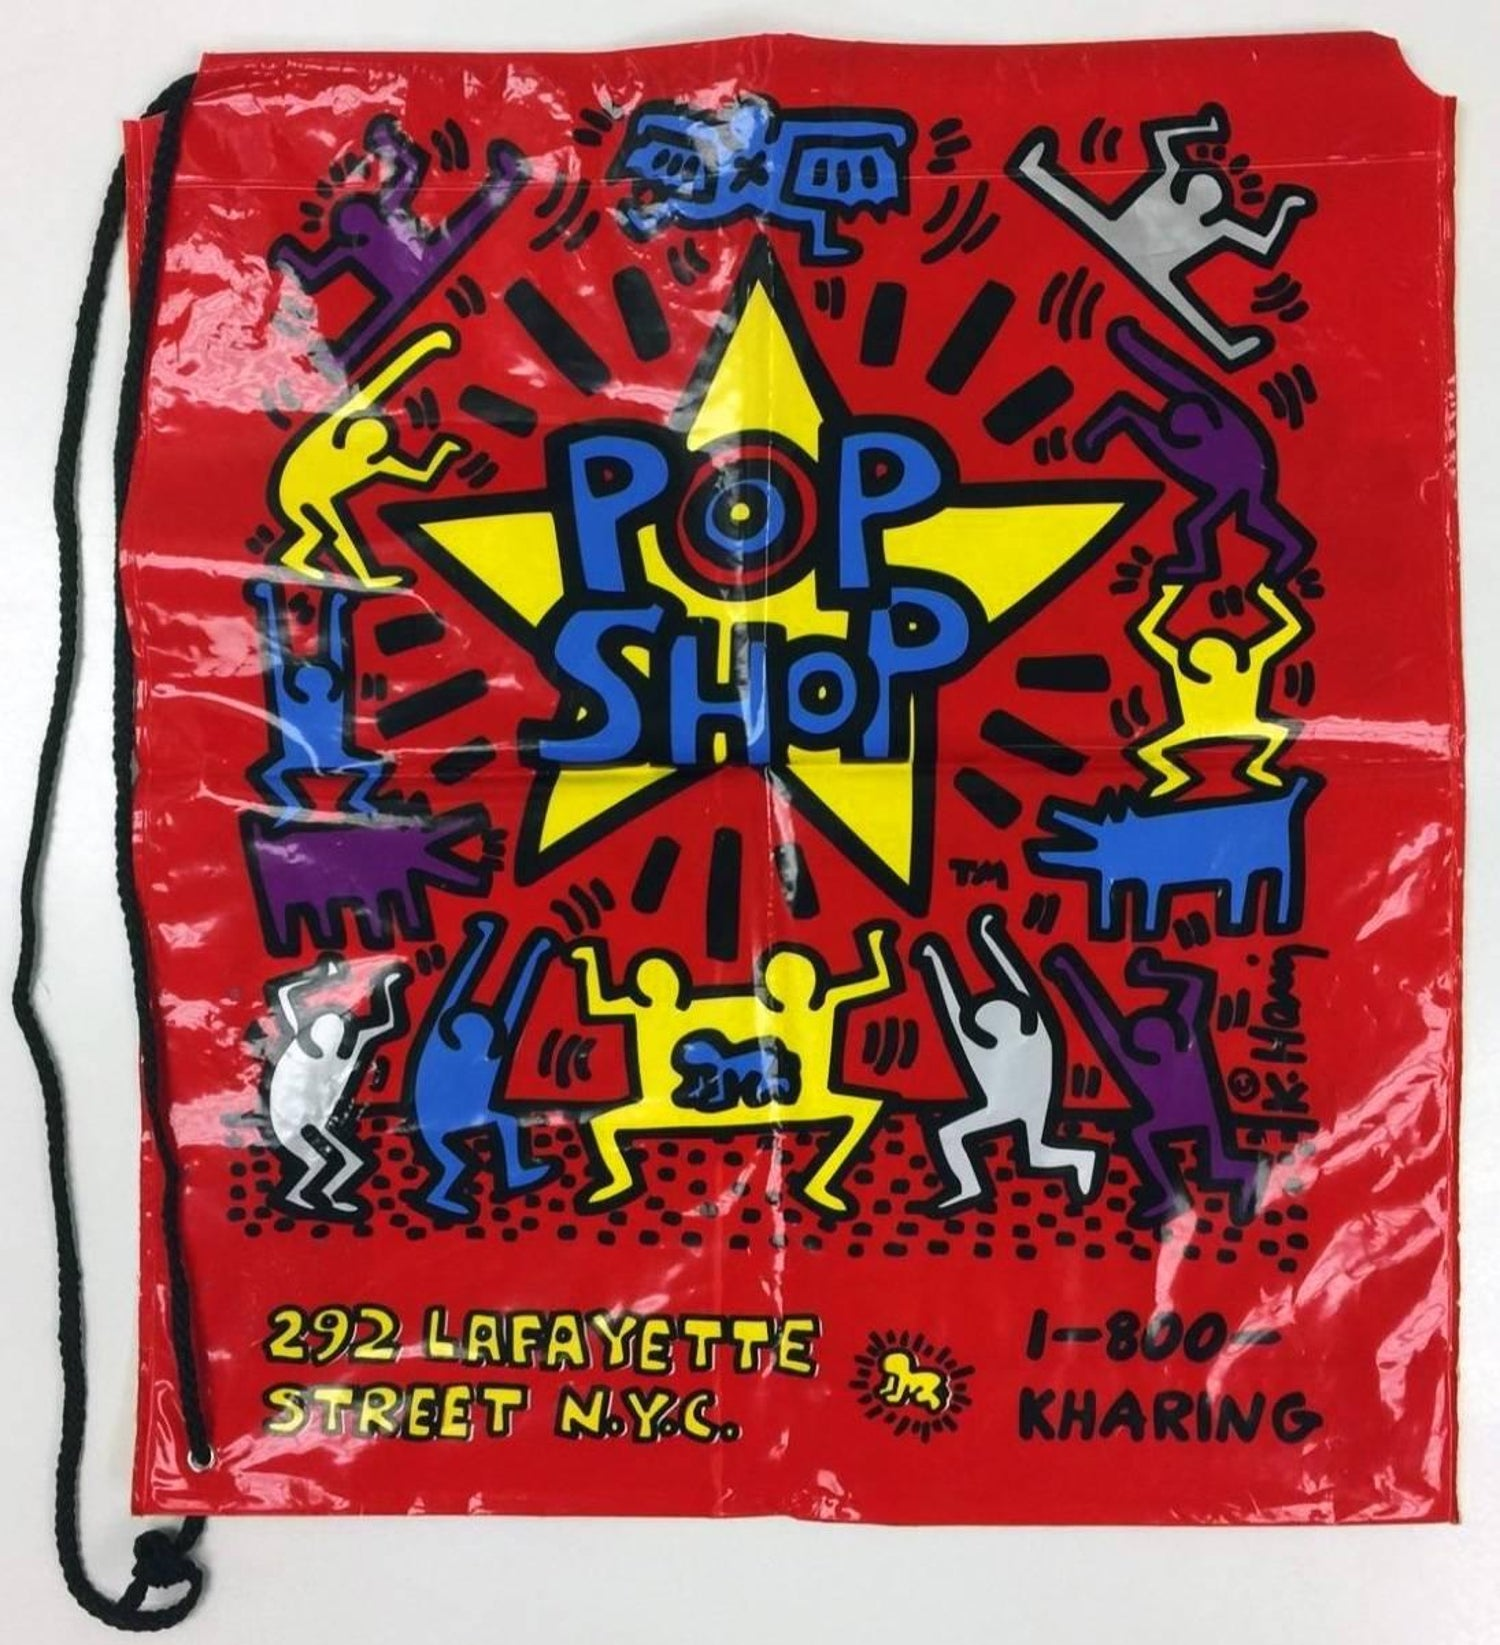 6c6b6f157 Keith Haring Pop Shop Collectible For Sale at 1stdibs